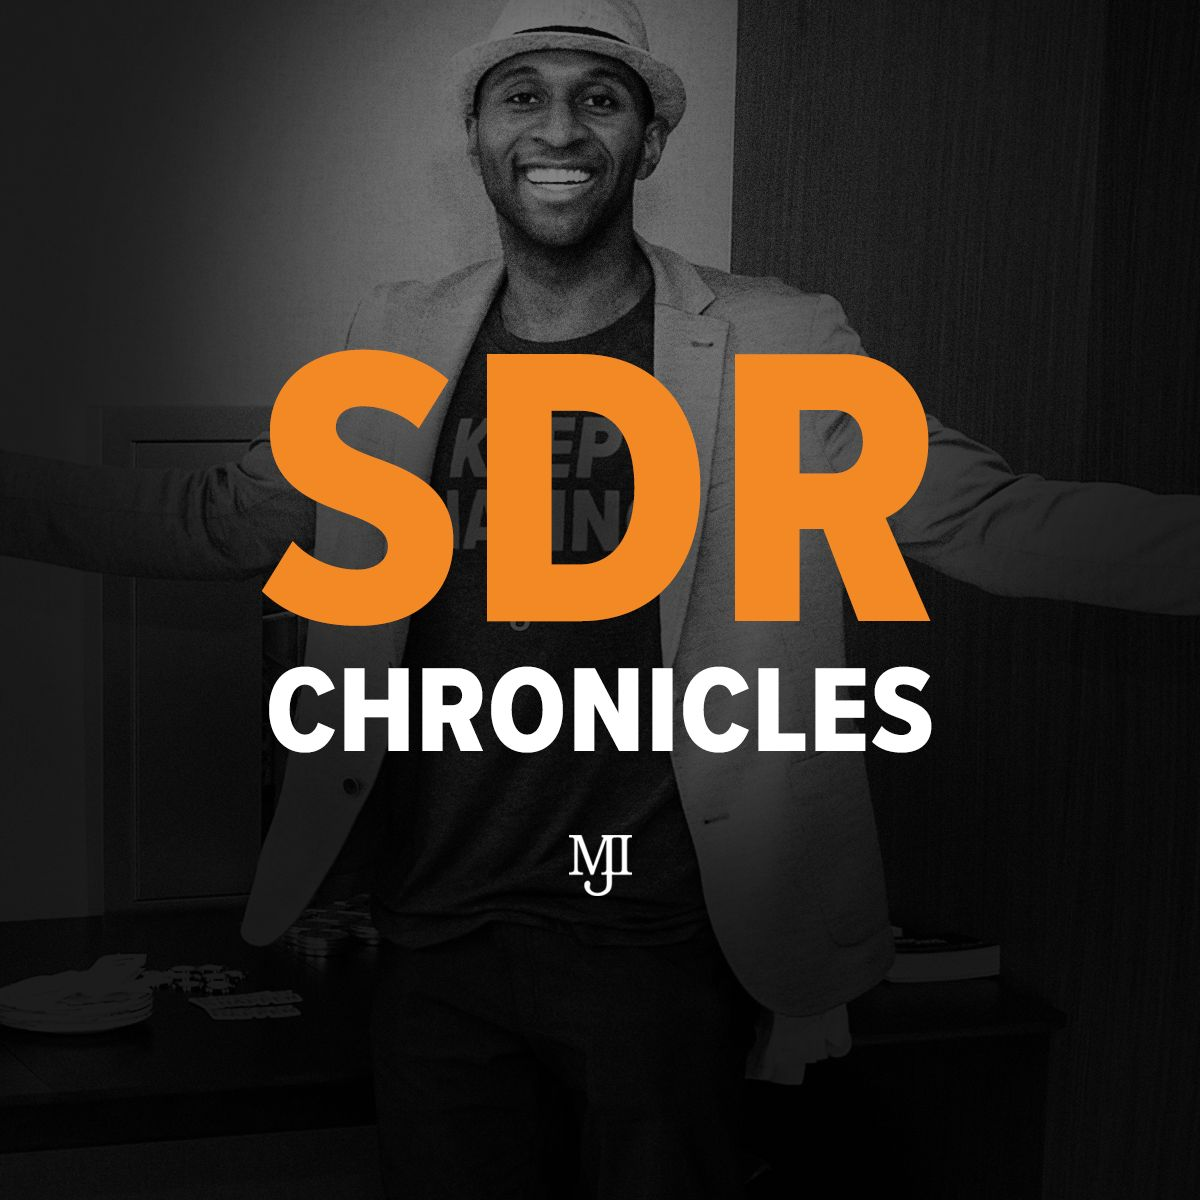 The SDR Chronicles with Morgan J Ingram